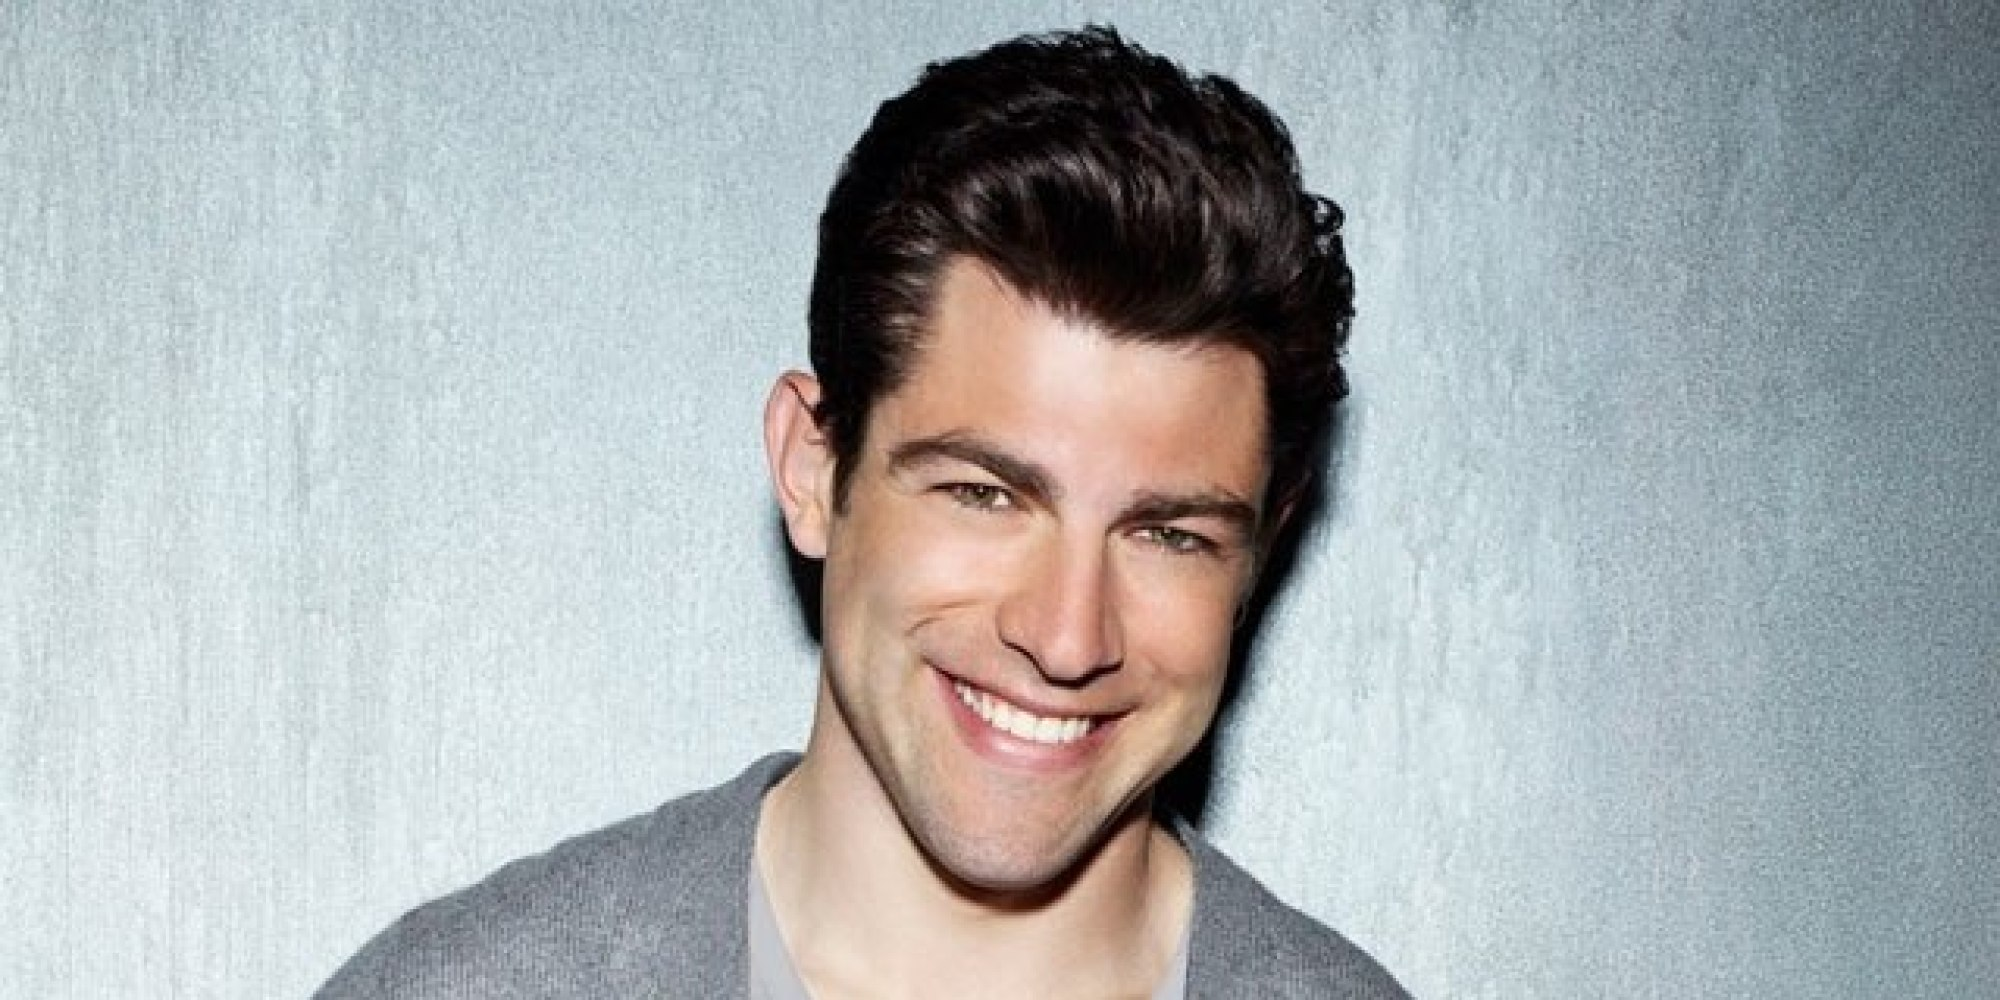 https://i1.wp.com/i.huffpost.com/gen/1752770/images/o-MAX-GREENFIELD-QUIT-ACTING-facebook.jpg